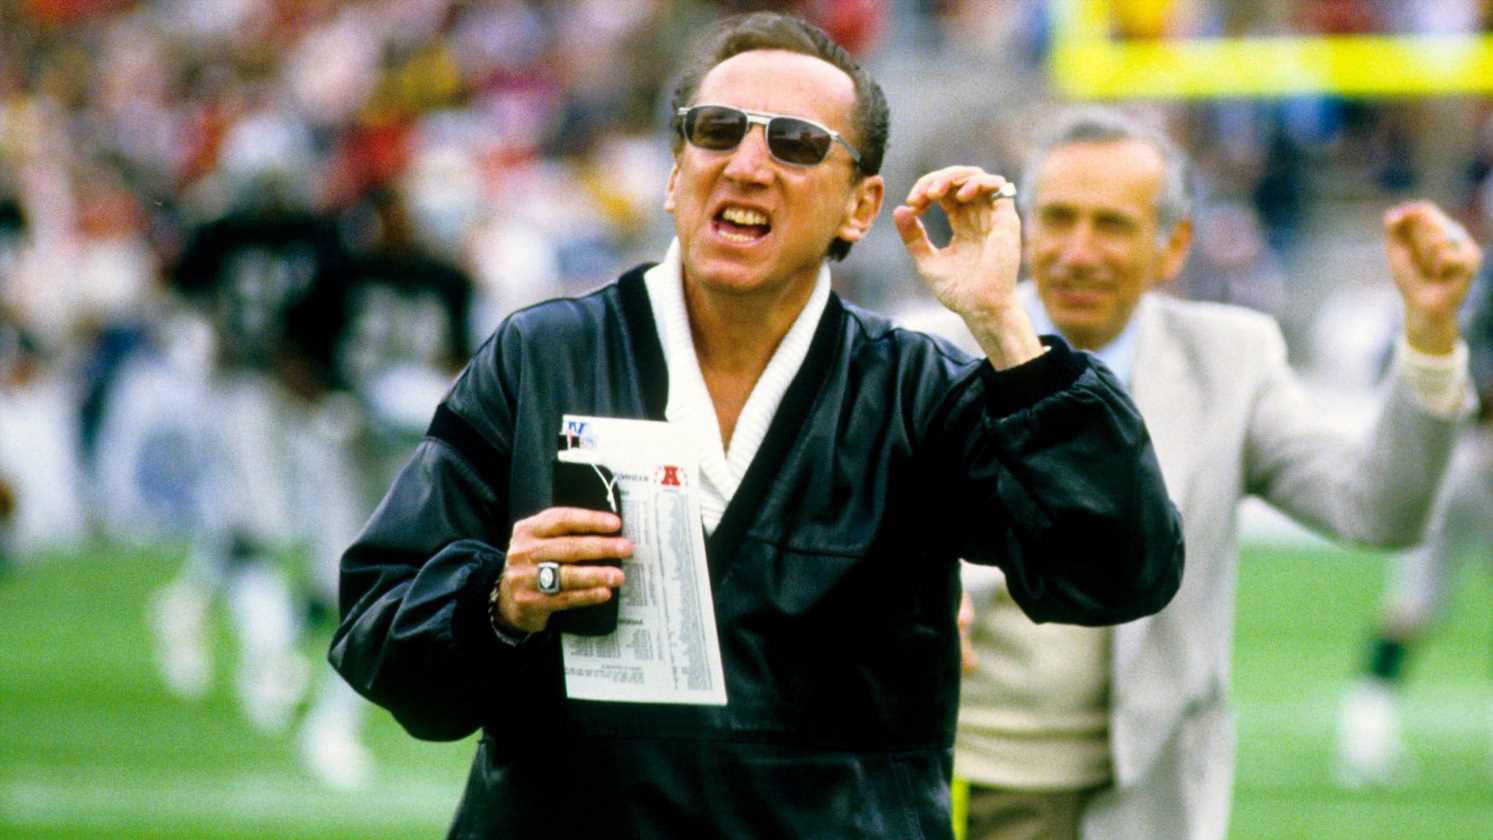 Opinion: Al Davis valued diversity, so no surprise that Carl Nassib made history with Raiders